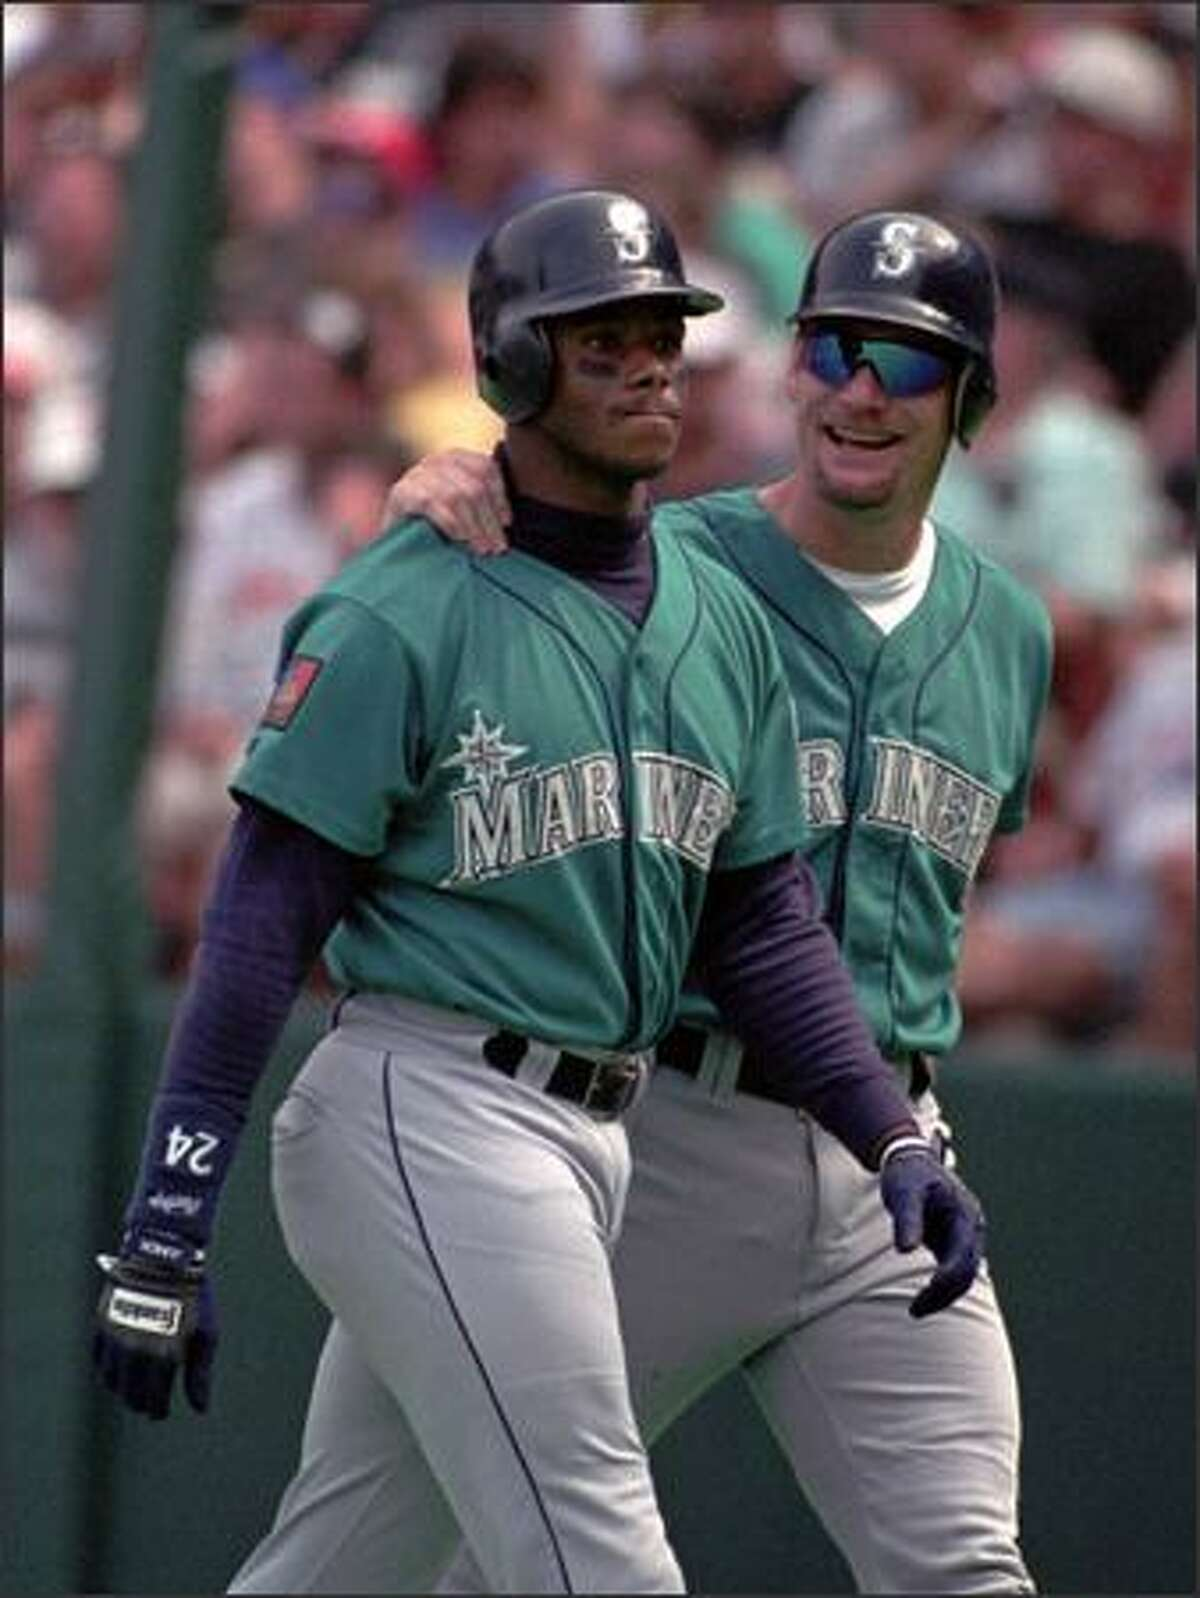 Ken Griffey Jr. gets a pat from Jay Buhner as they leave the field after a home run by Griffey in 1994.